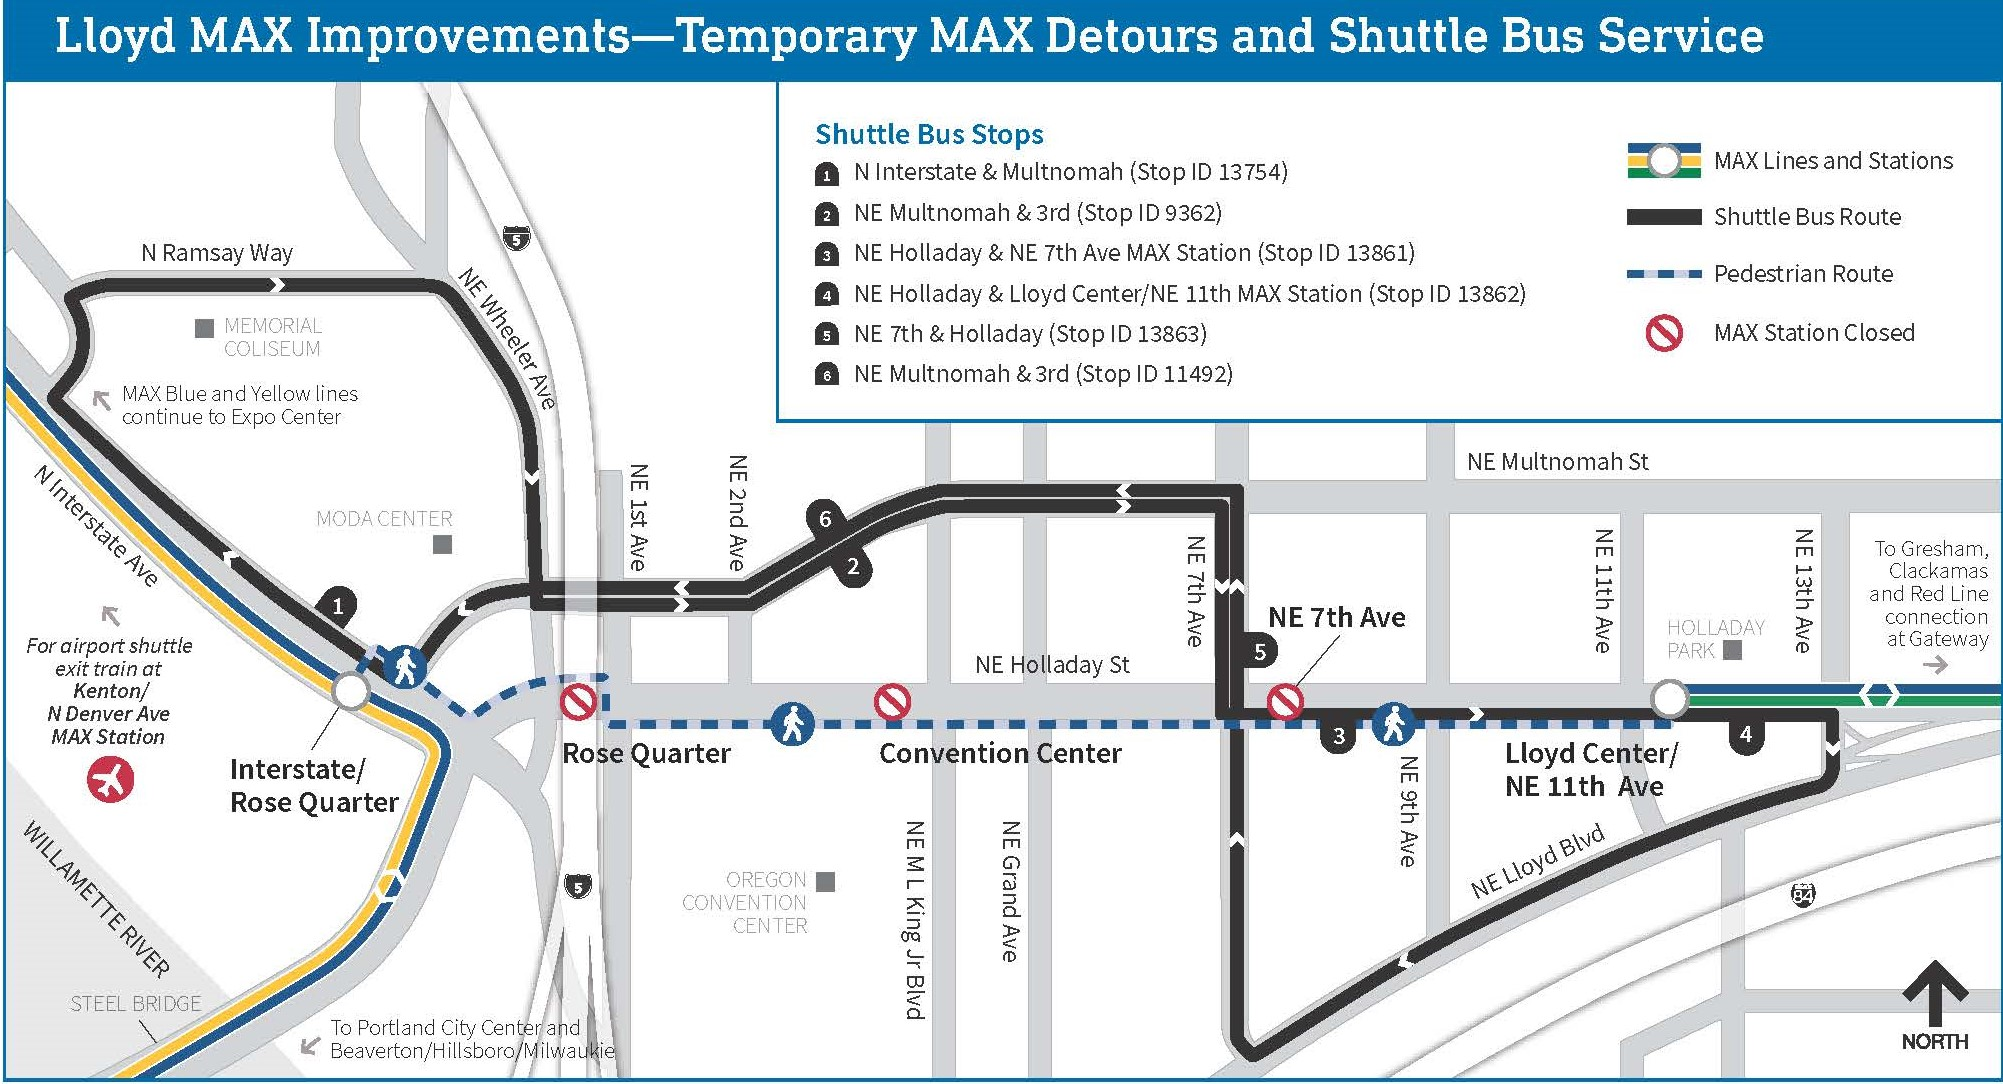 to lessen the disruption to max red line riders heading to and from the  airport, shuttle buses will run directly between the kenton/n denver ave  station,